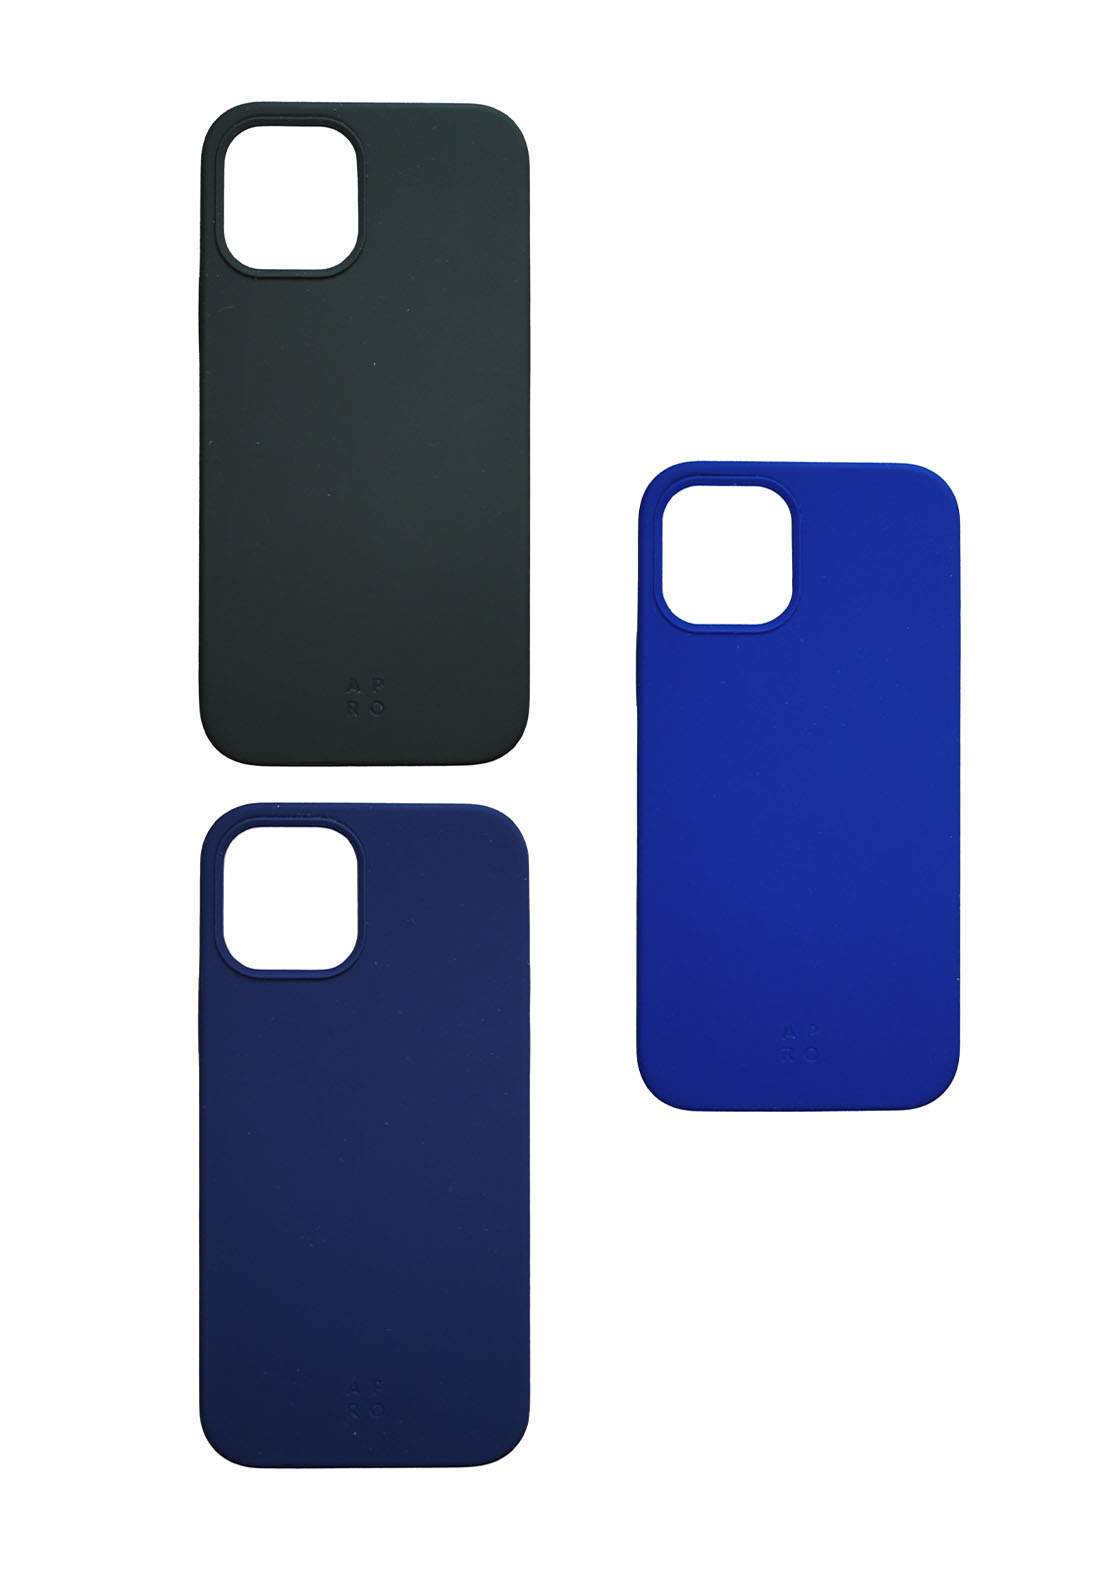 Apro Protective Cover For Iphone 12 حافظة موبايل